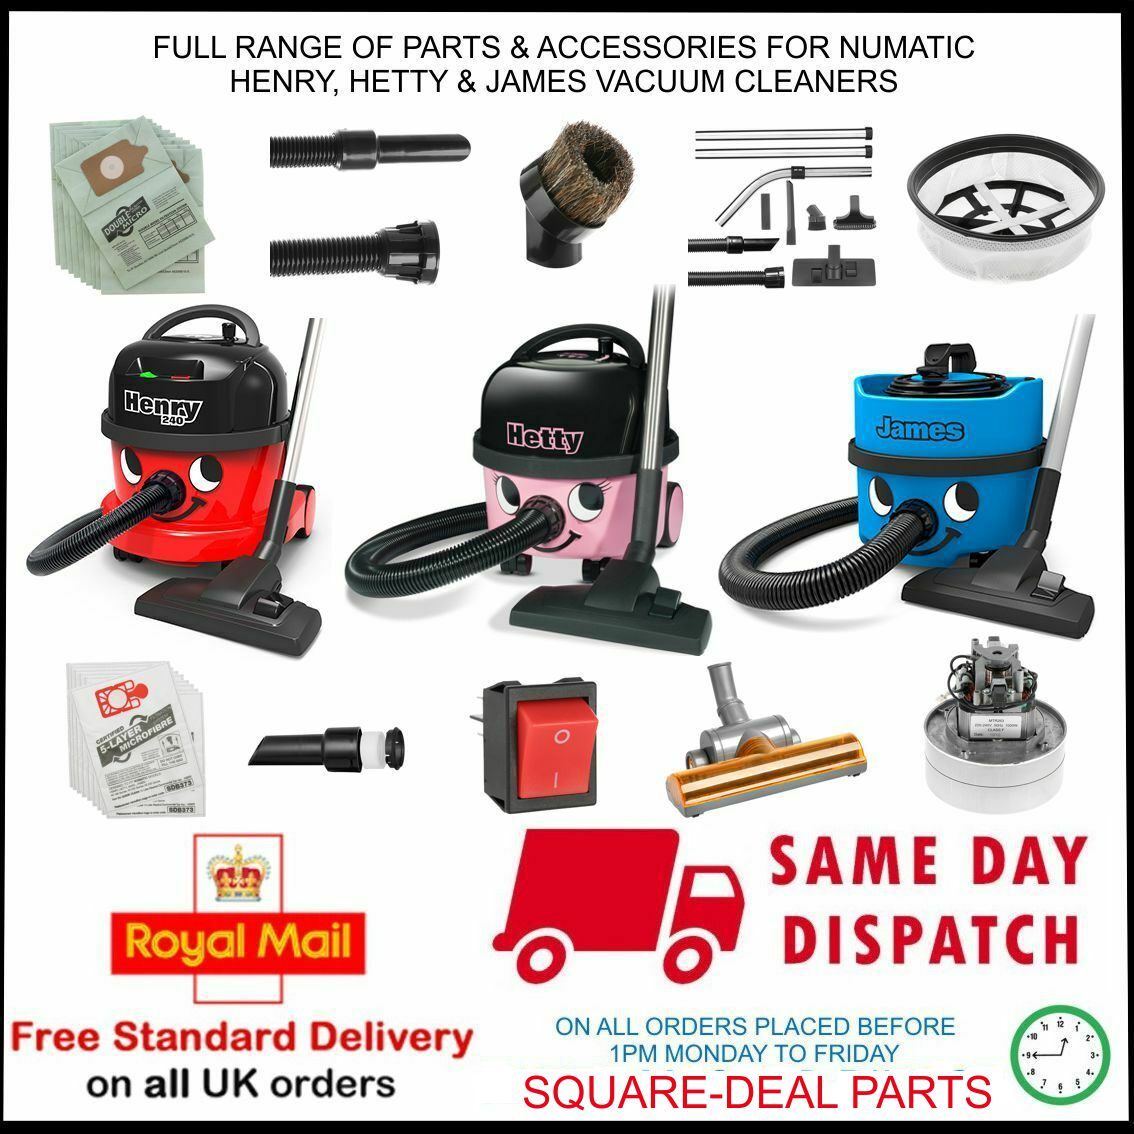 NUMATIC HENRY HETT JAMES SPARE PARTS ACCEORIE